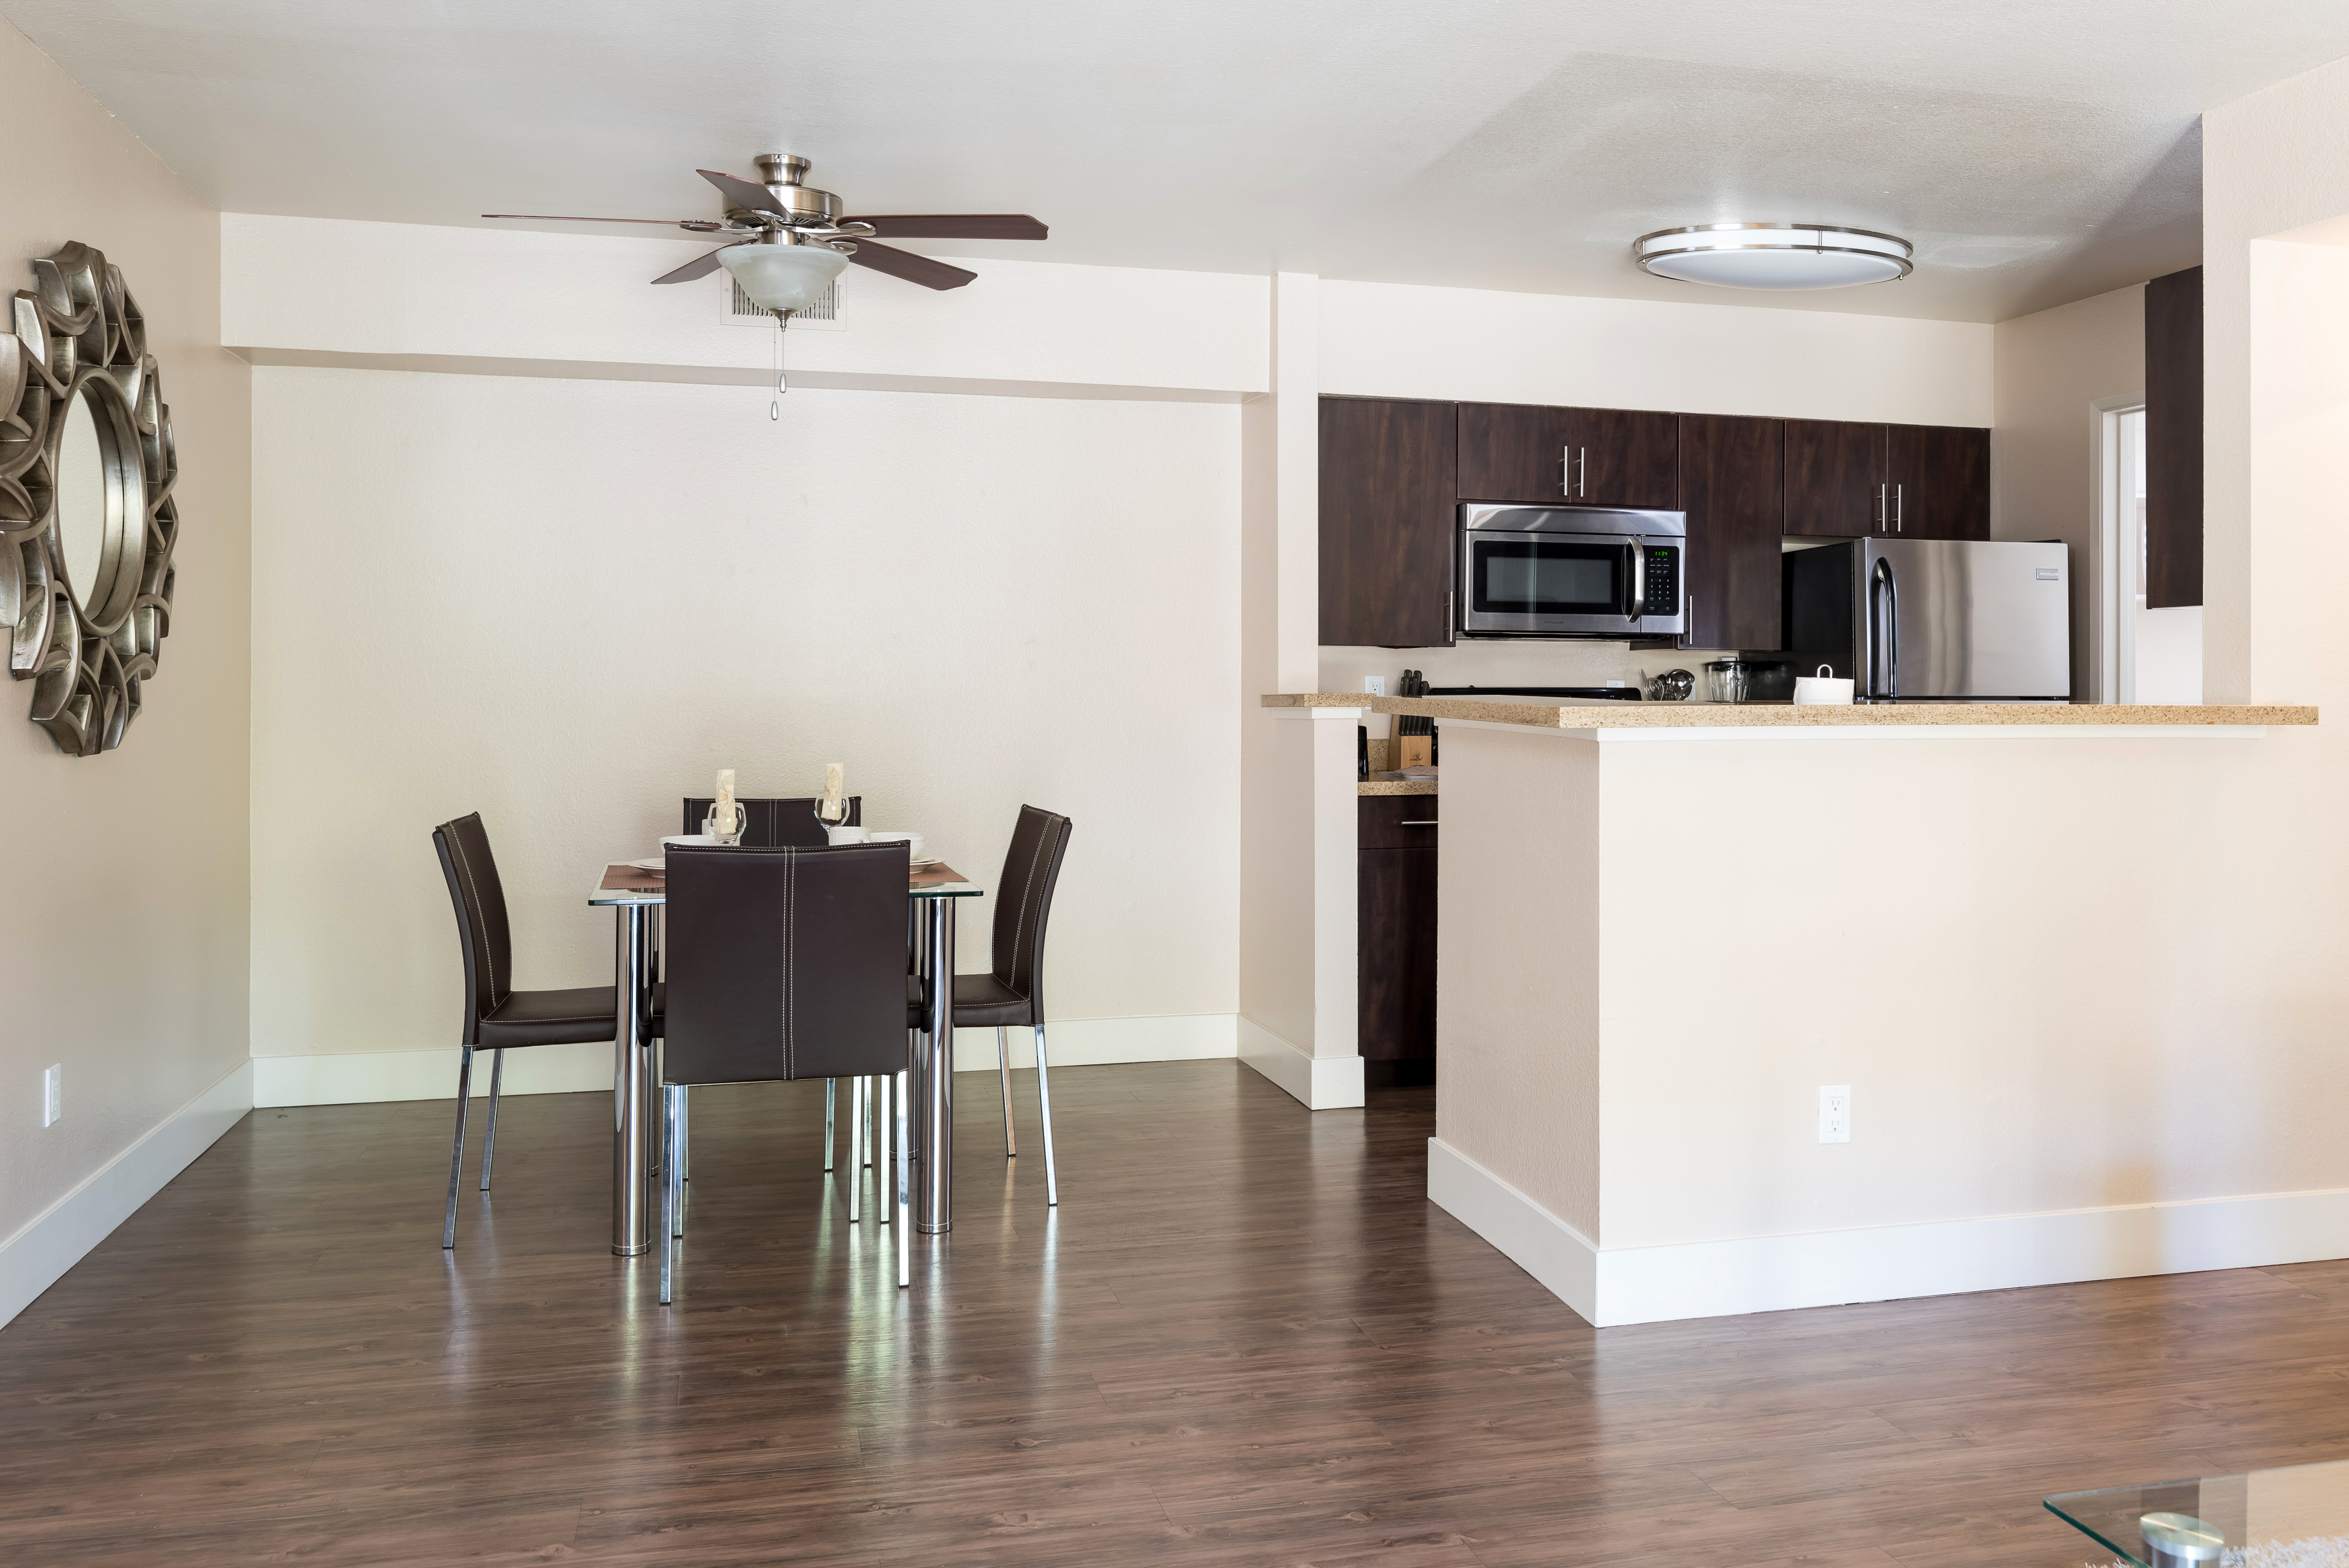 image 5 furnished 2 bedroom Apartment for rent in San Ramon, Contra Costa County